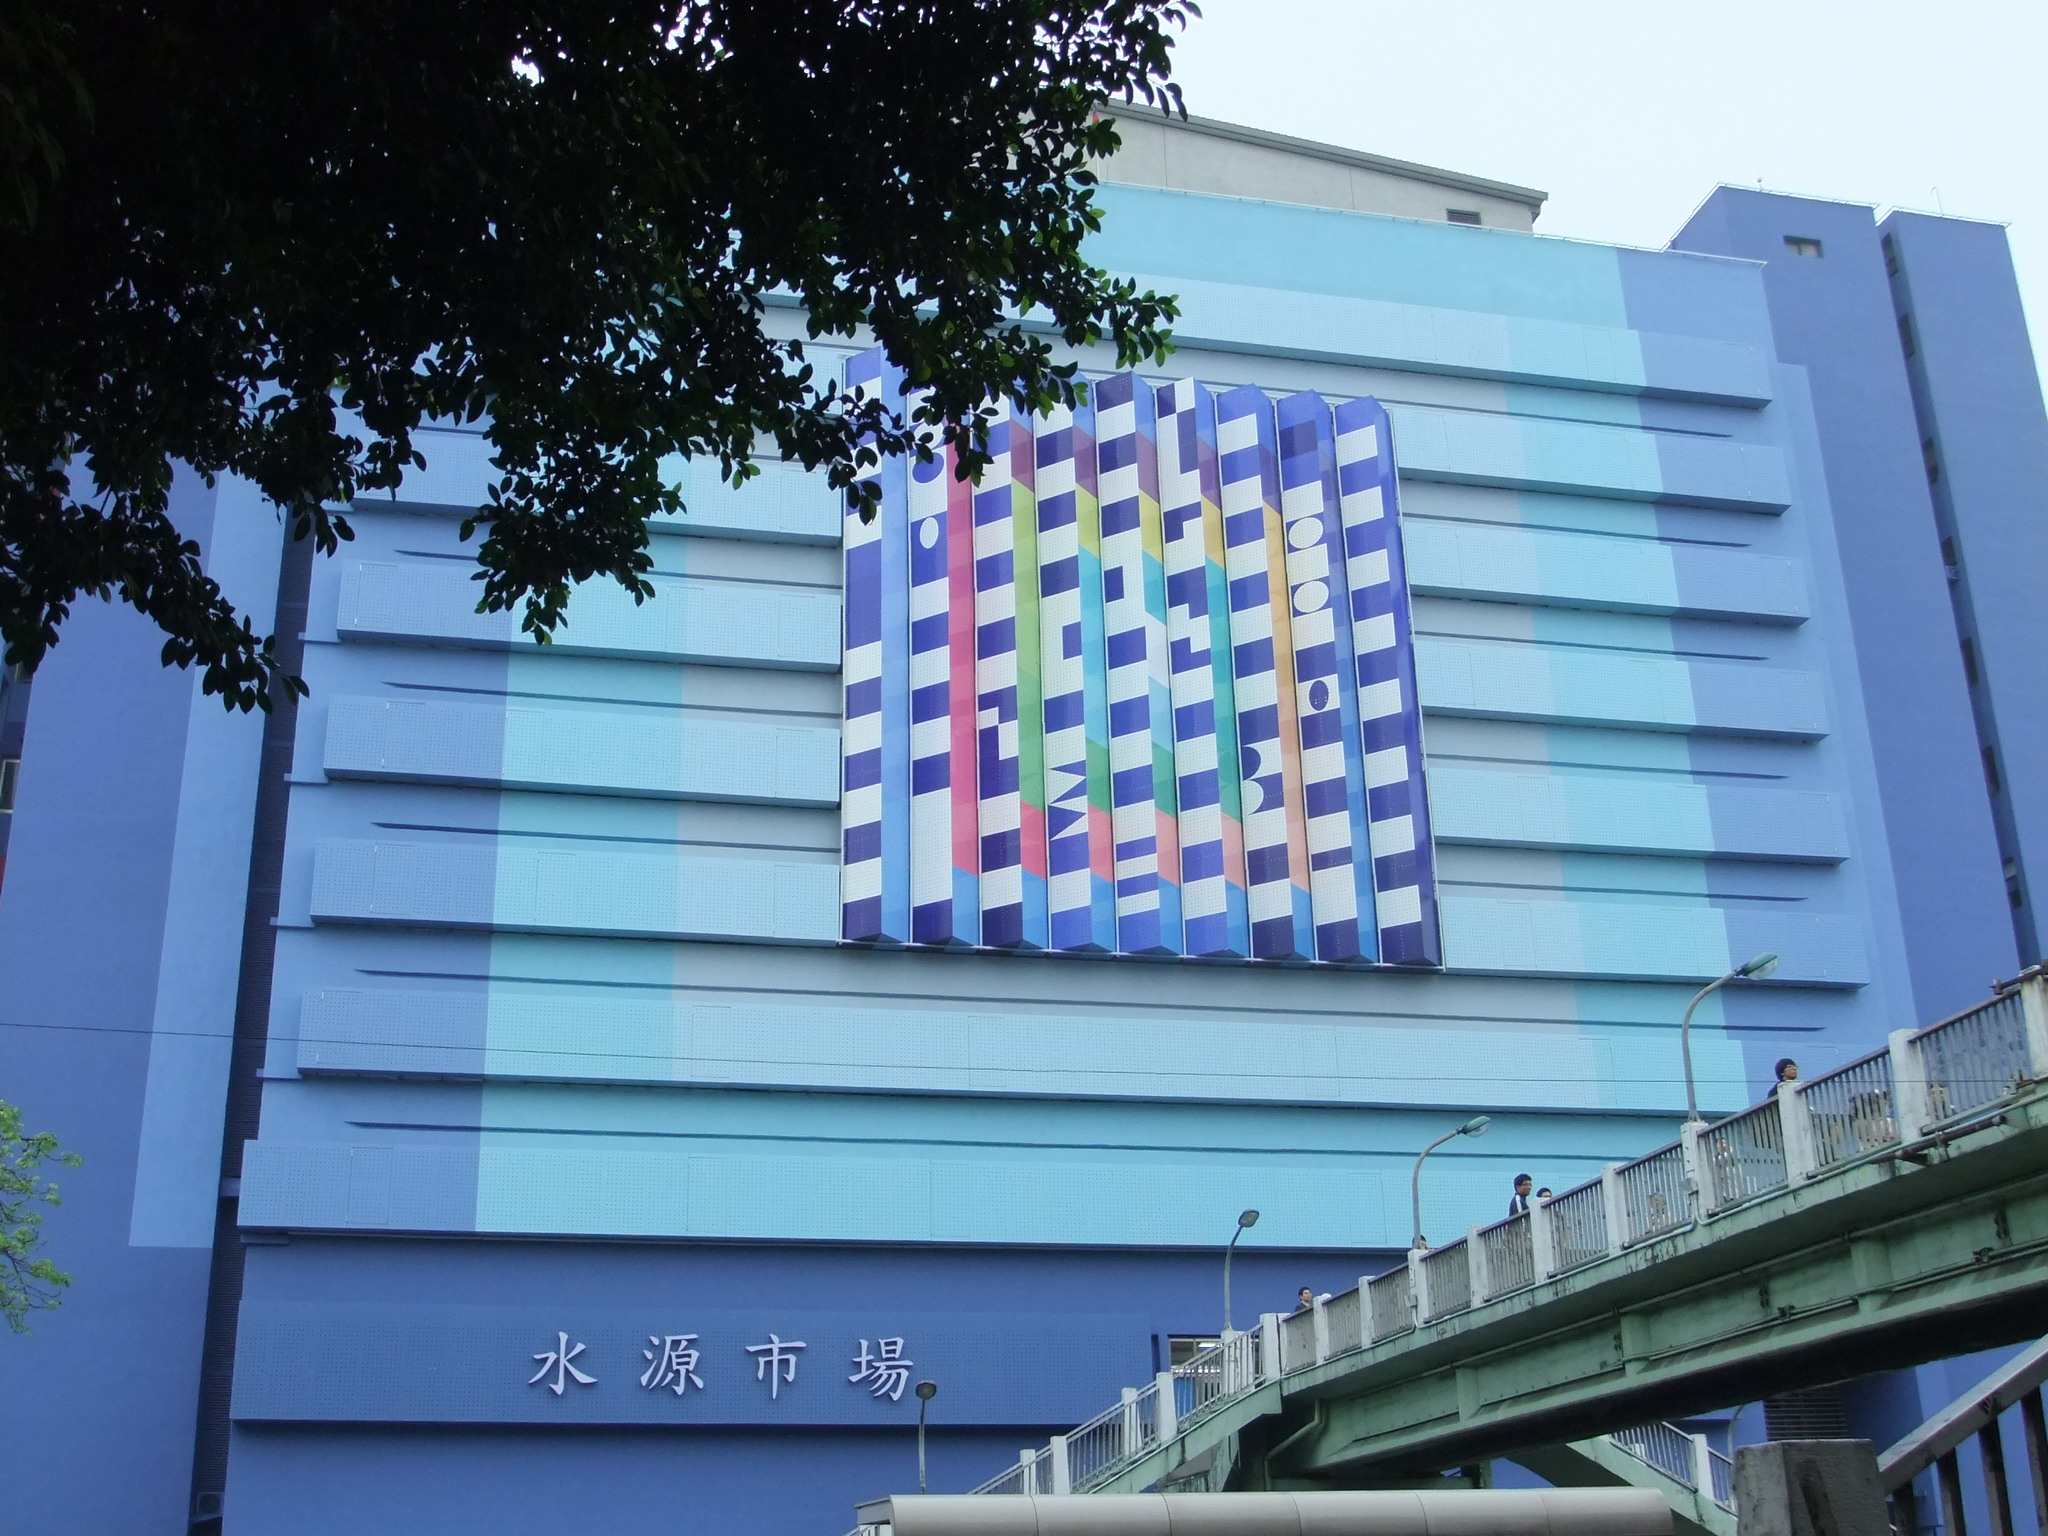 Israli artist Agam transforms Taipei old market into a giant art installation